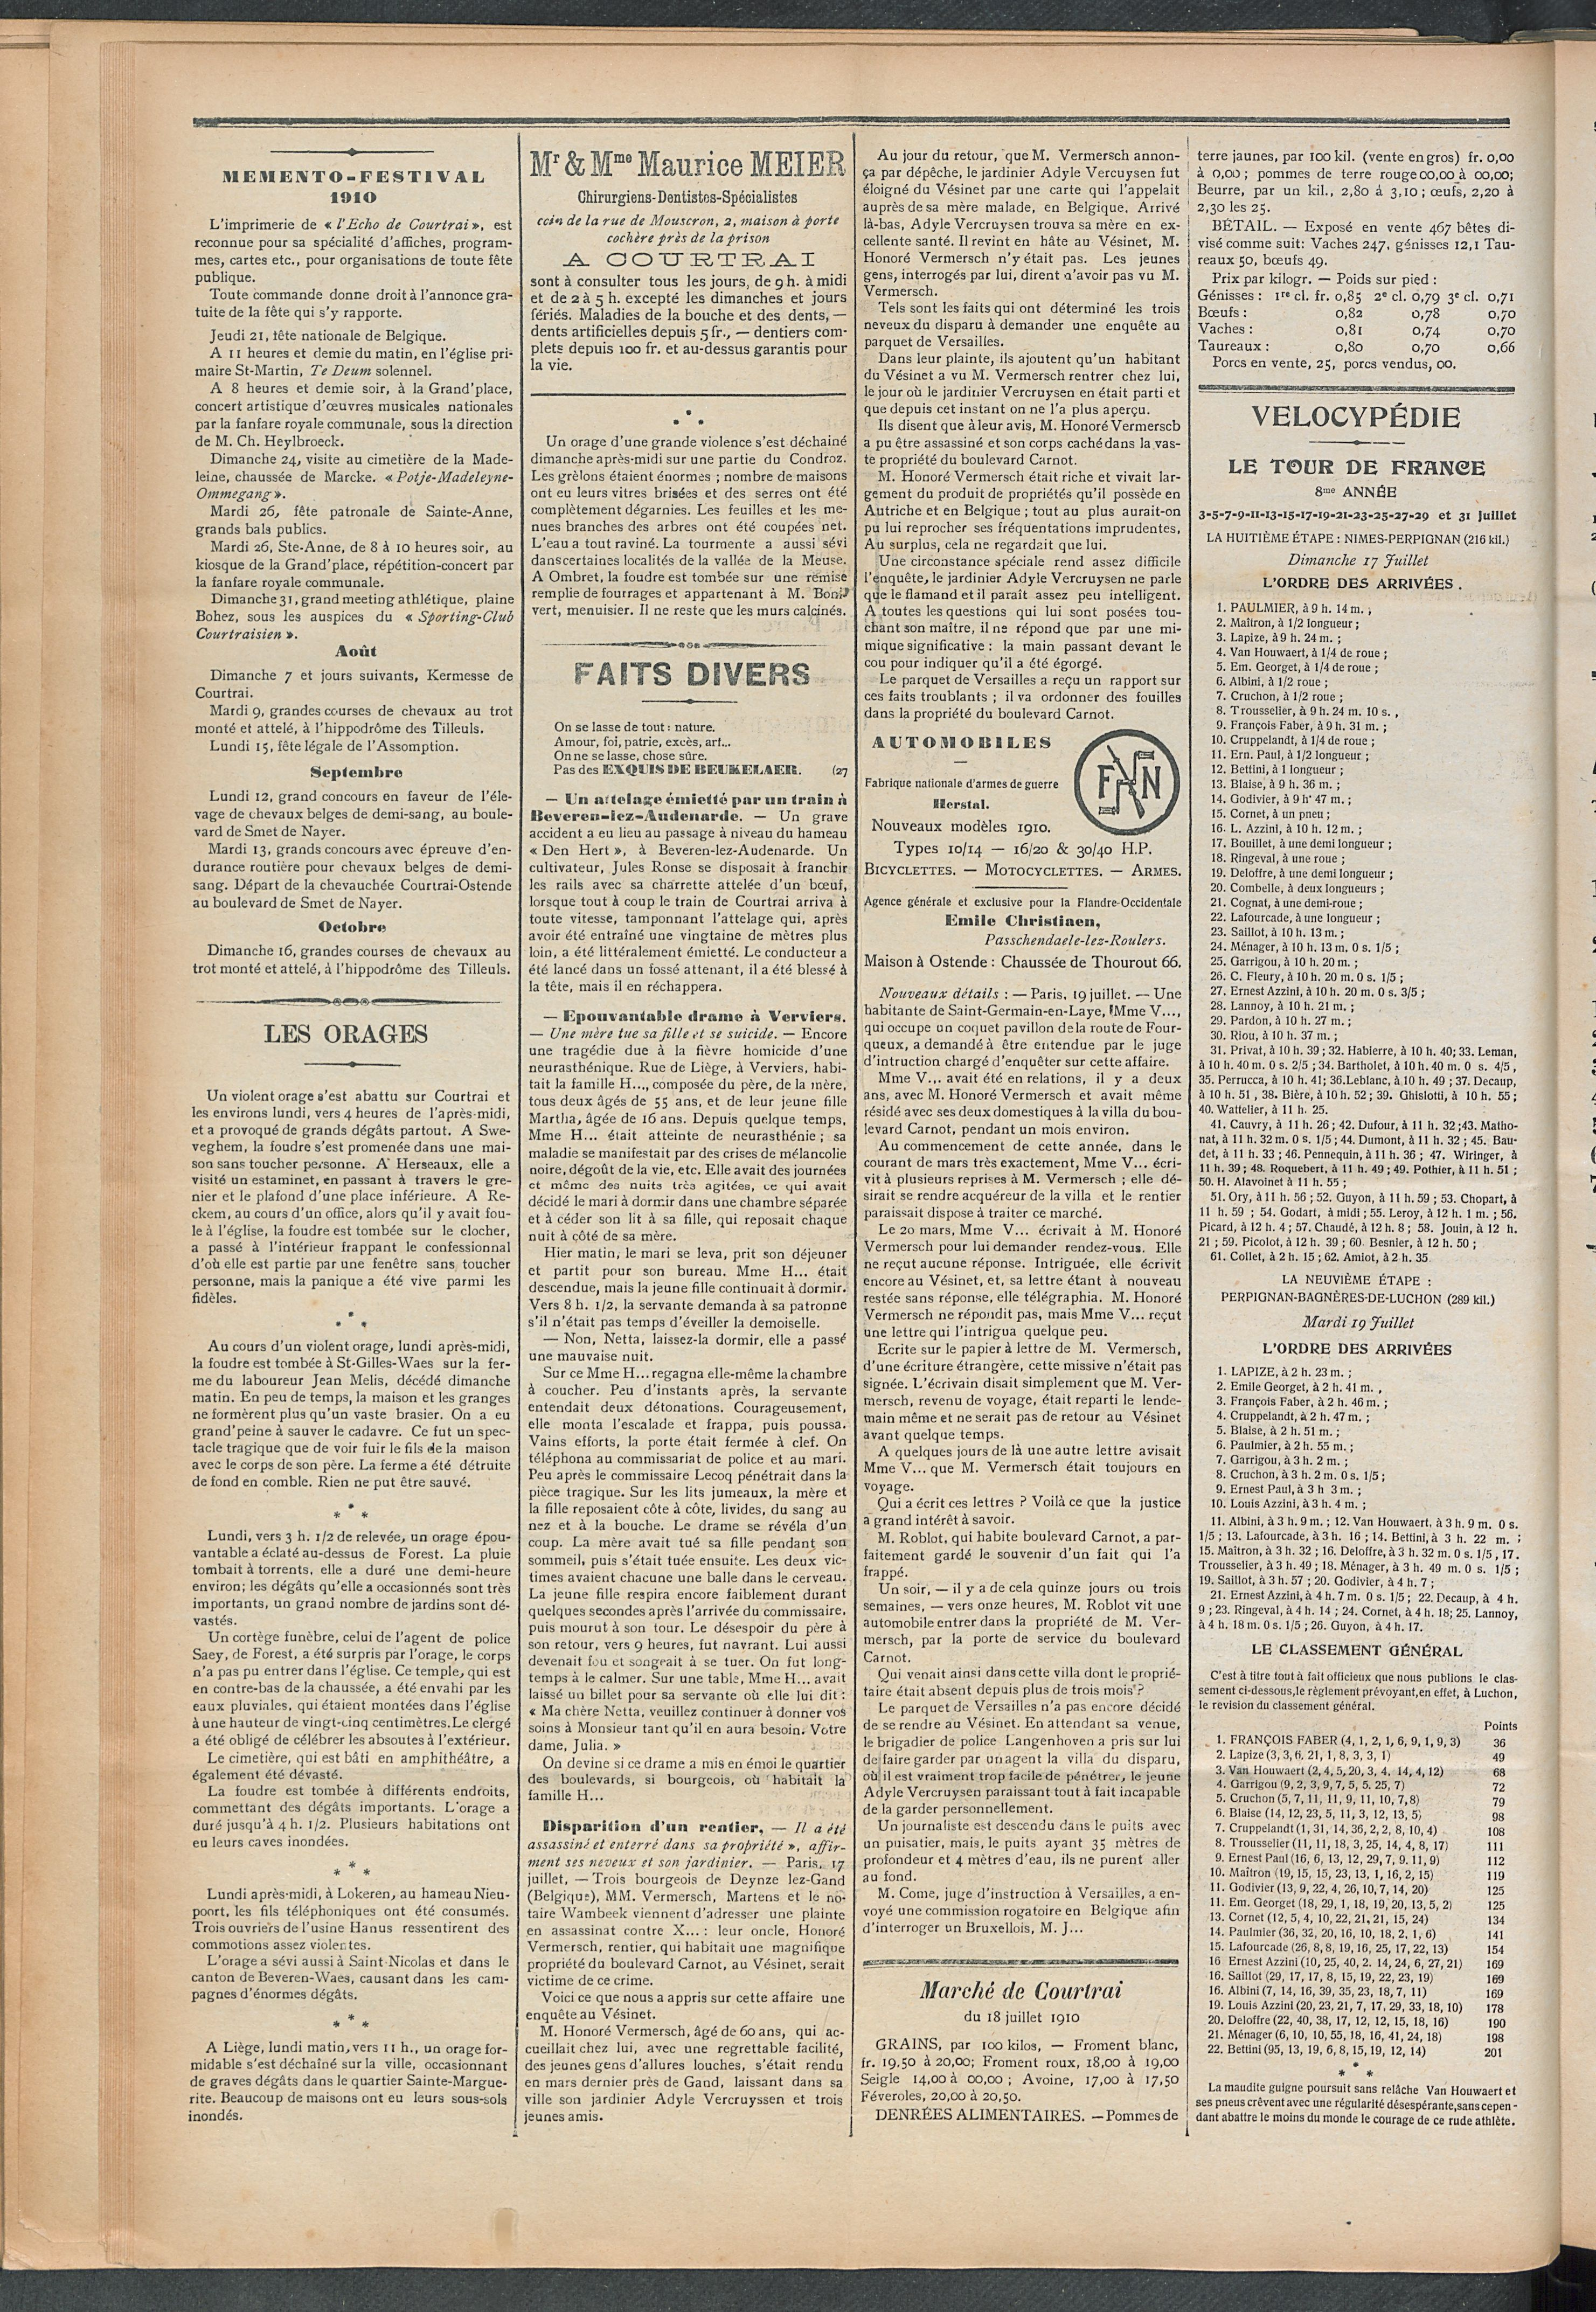 L'echo De Courtrai 1910-07-21 p2